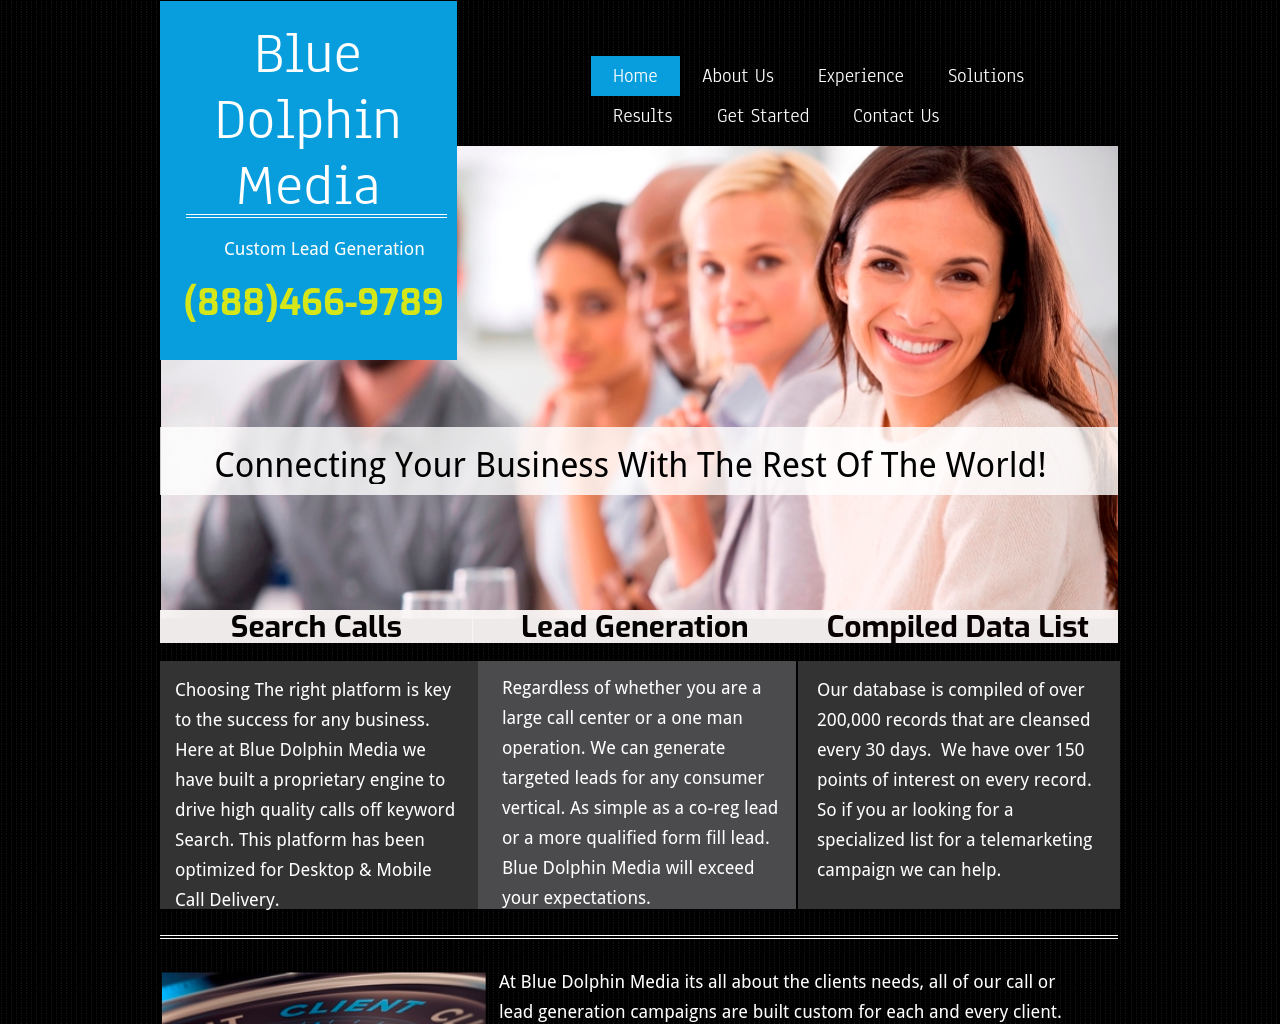 Blue-Dolphin-Media-Advertising-Reviews-Pricing